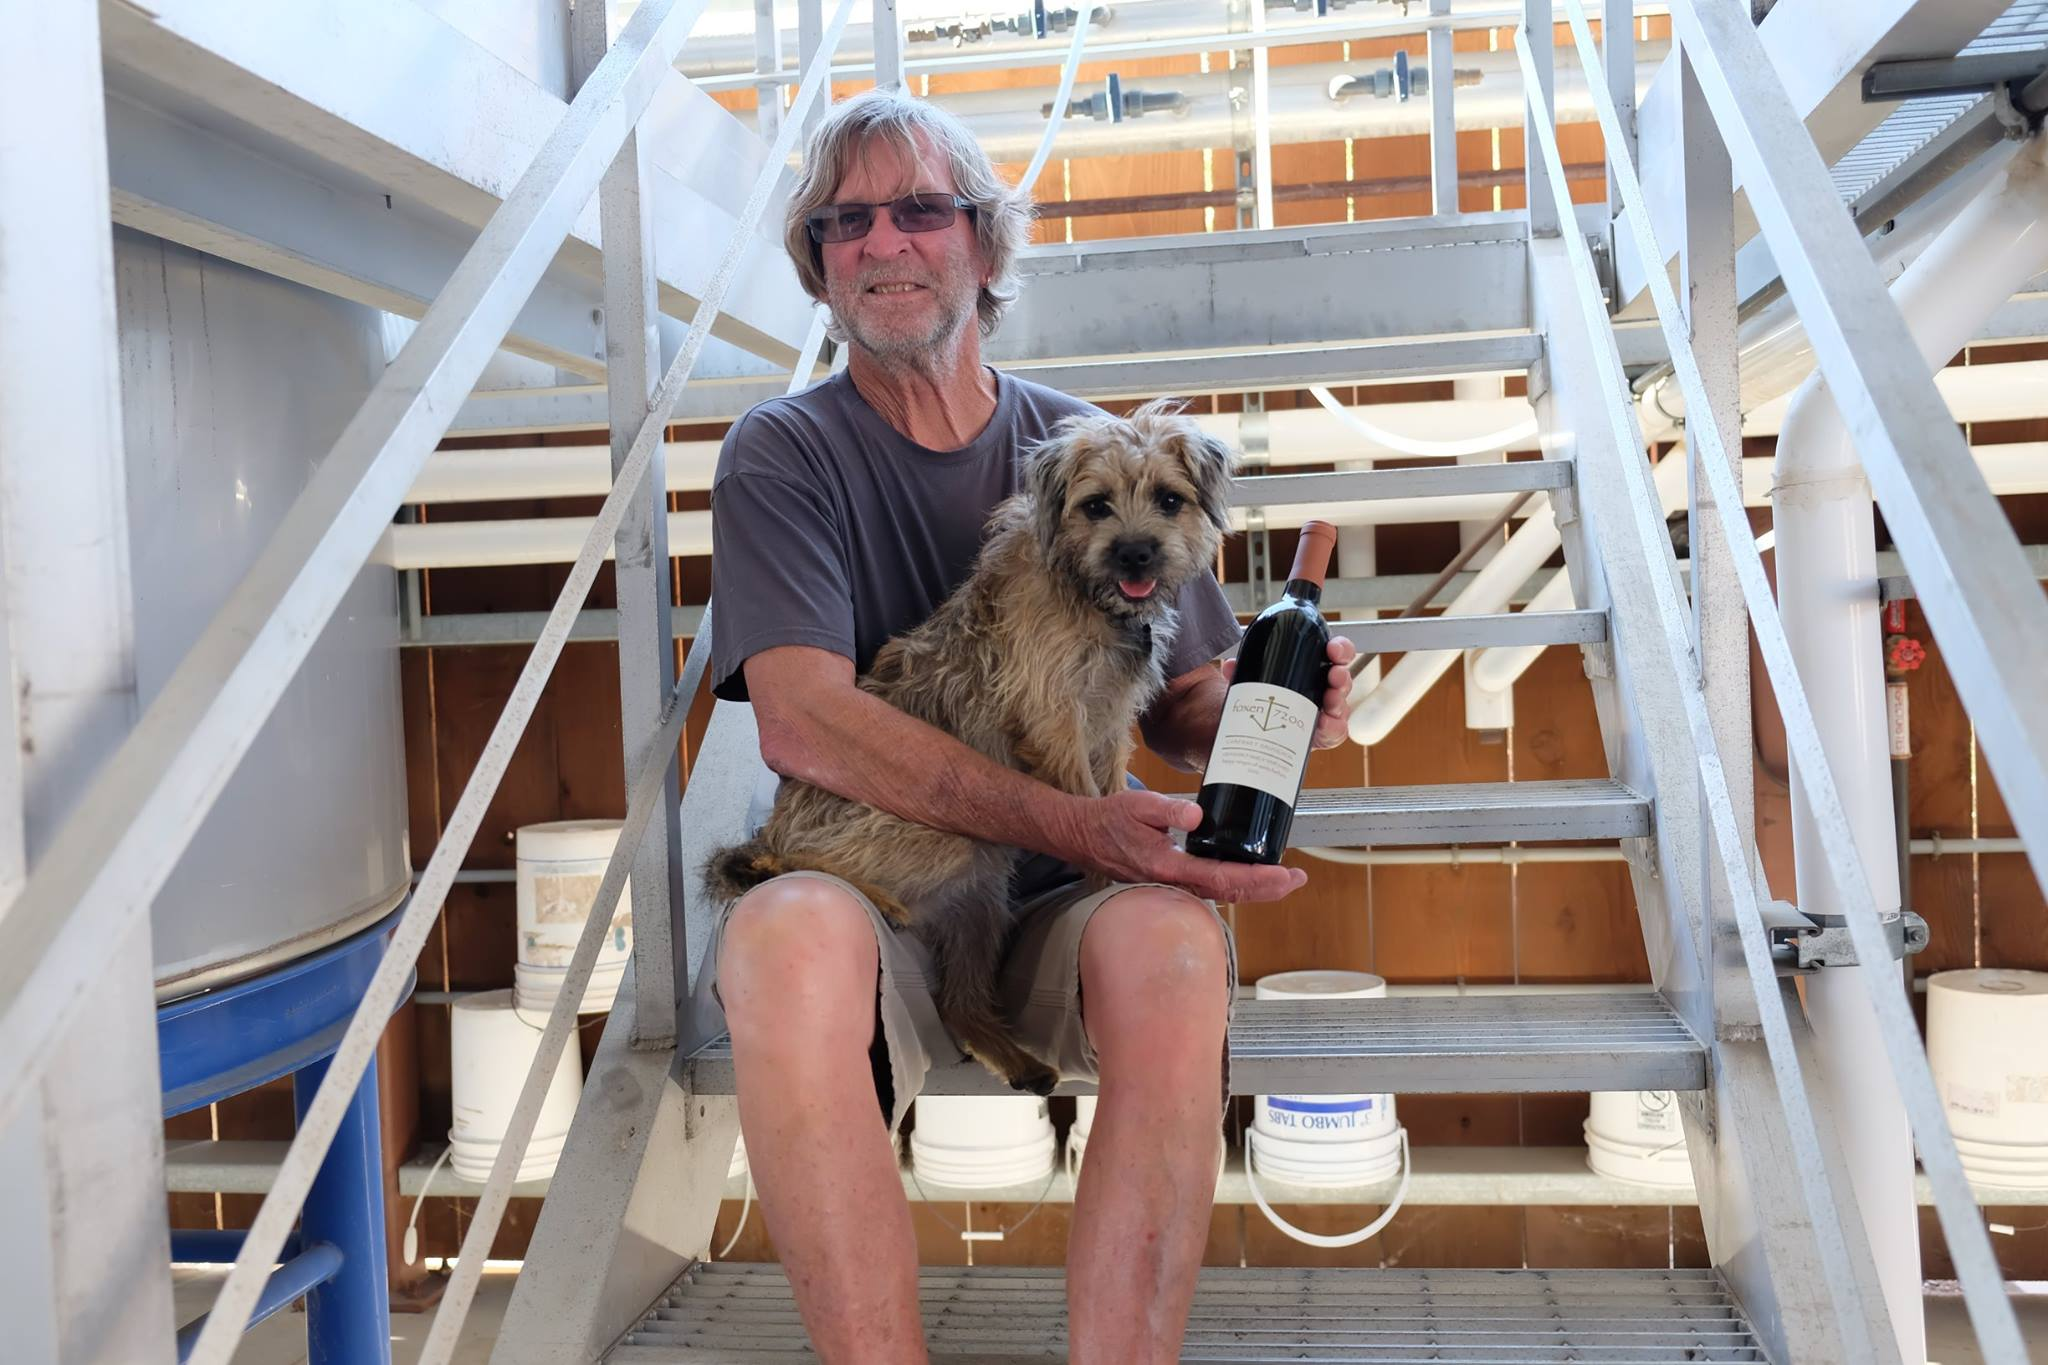 A winemaker with his dog. Bill Walthen has crafted some of the best Pinot Noir for many years in the Santa Barbara area. His new releases were highly impressive.